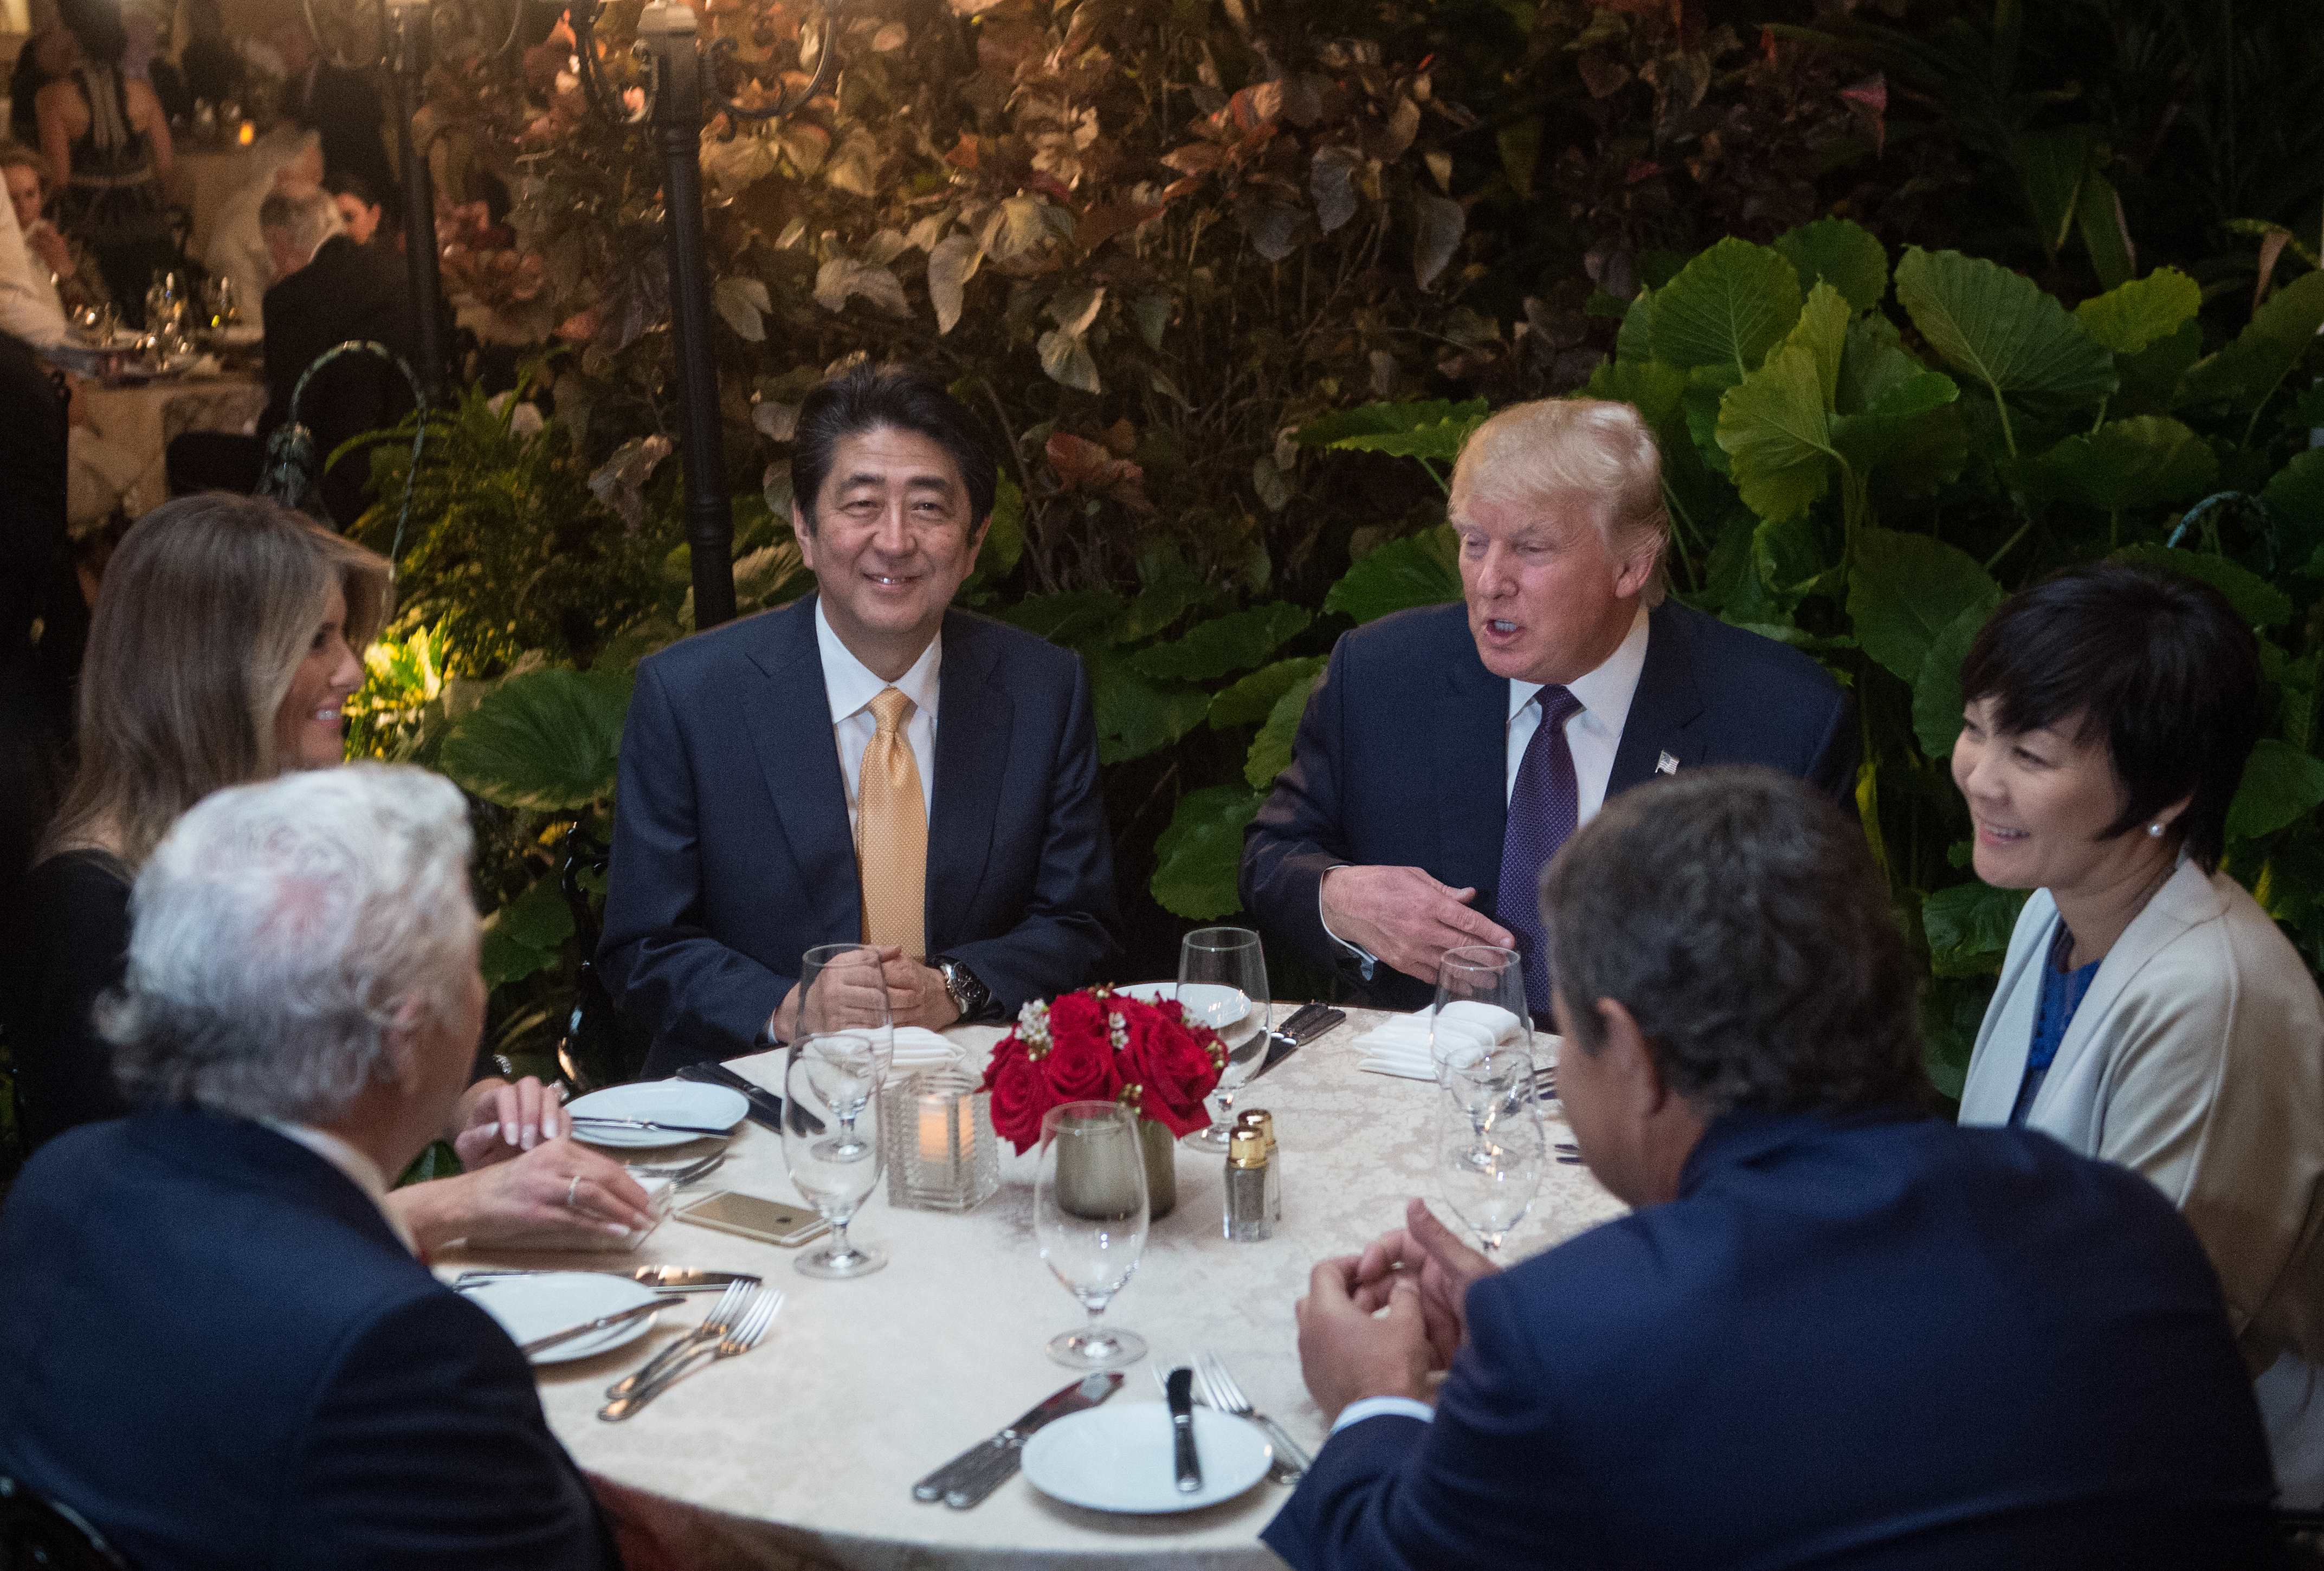 President Donald Trump and other influential people sit down for dinner.